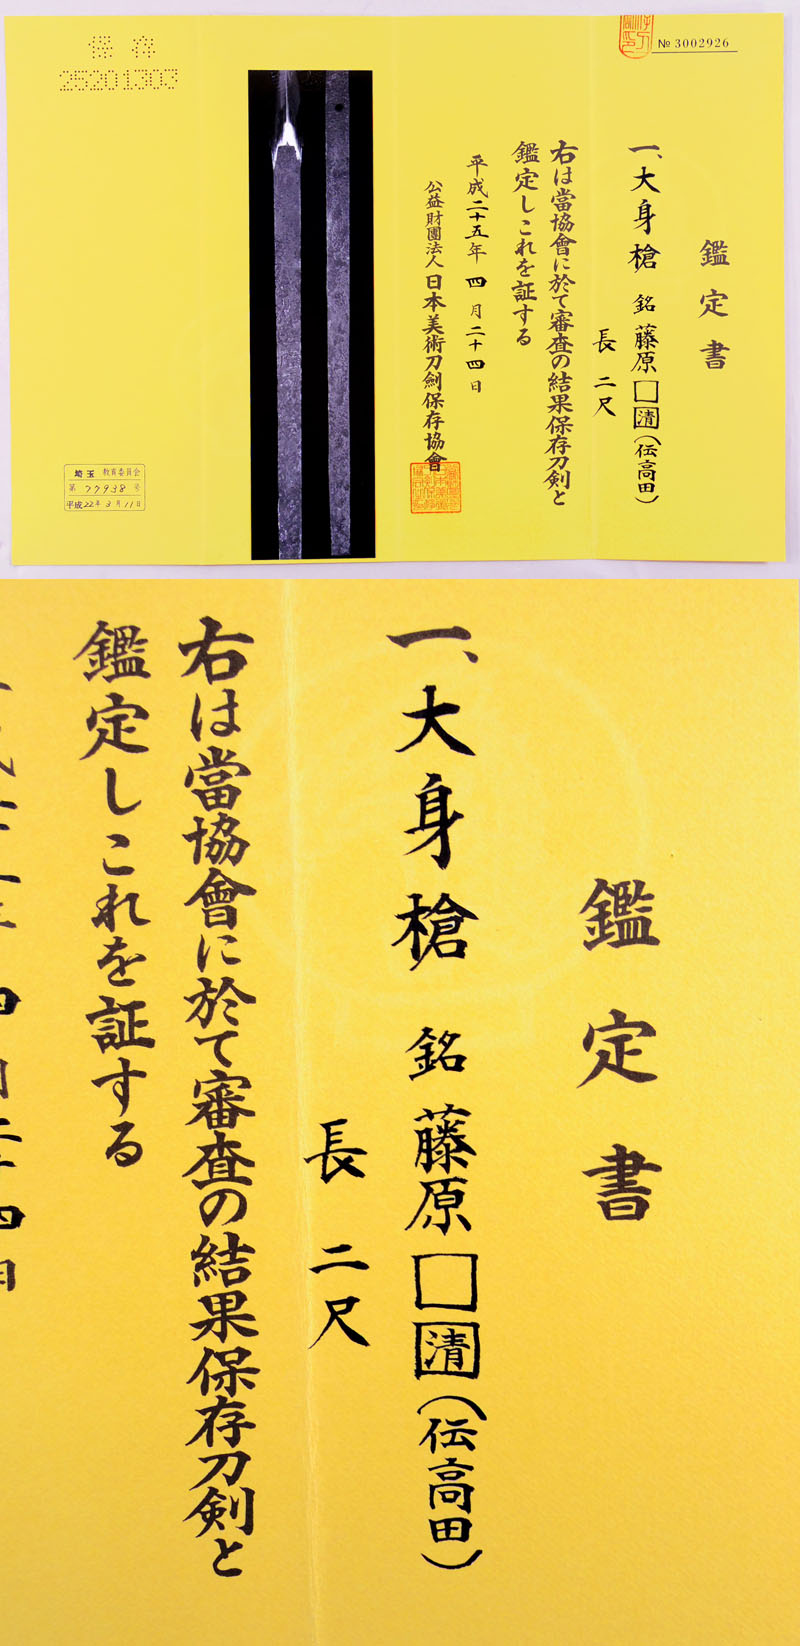 藤原□清(伝高田) Picture of Certificate